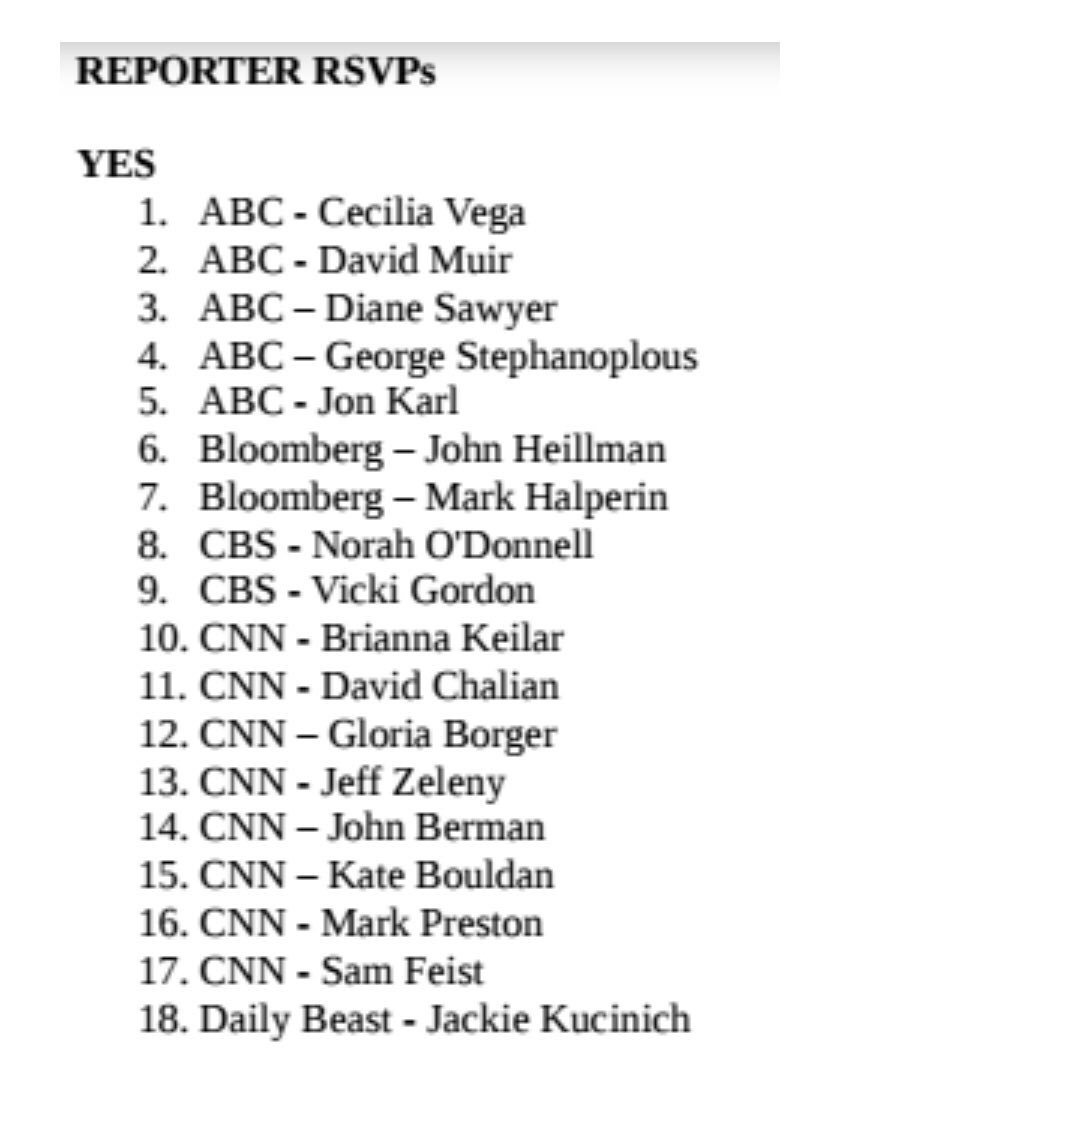 Wikileaks Shows Every Reporter on Hillary's Payroll - I Hate Hillary